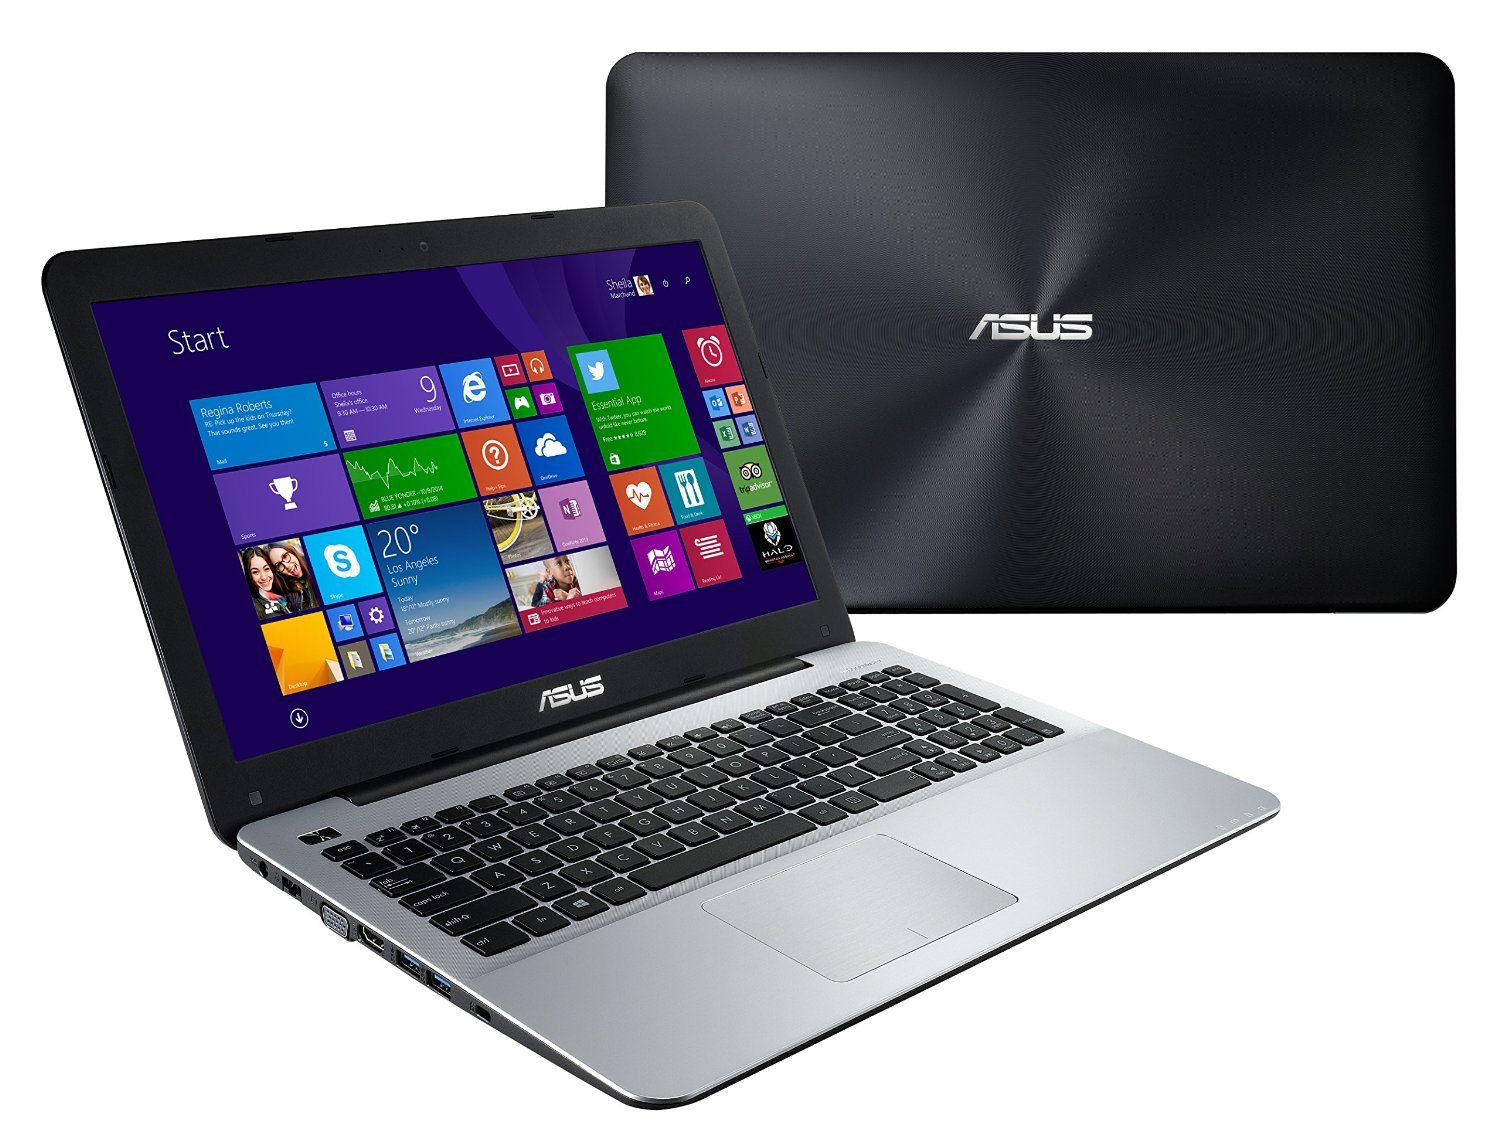 graduation gifts, laptops, best laptops, laptops for students